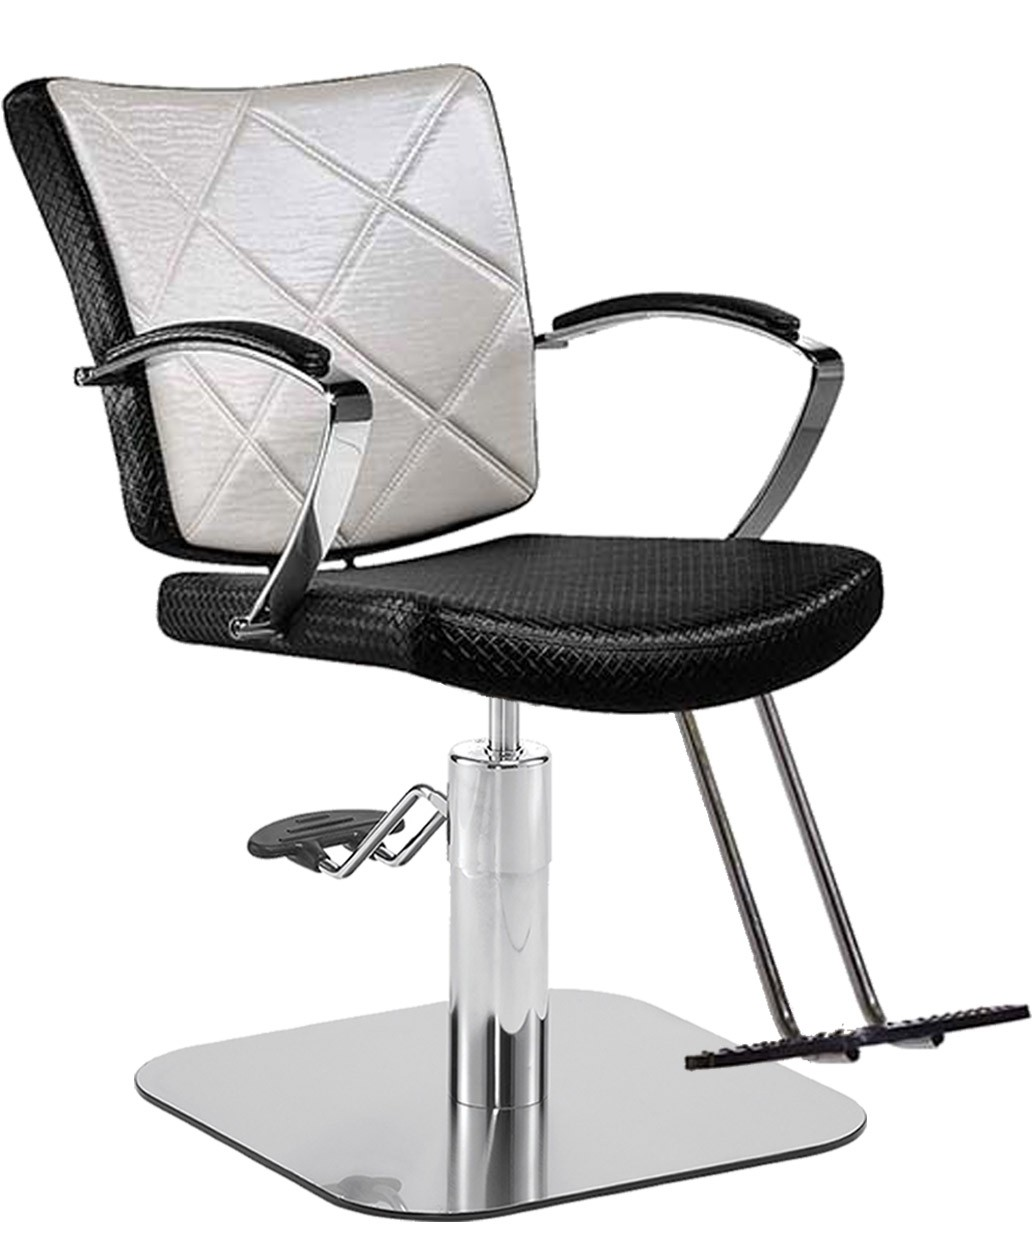 Salon Ambience SH-165 Julie Styling Chair